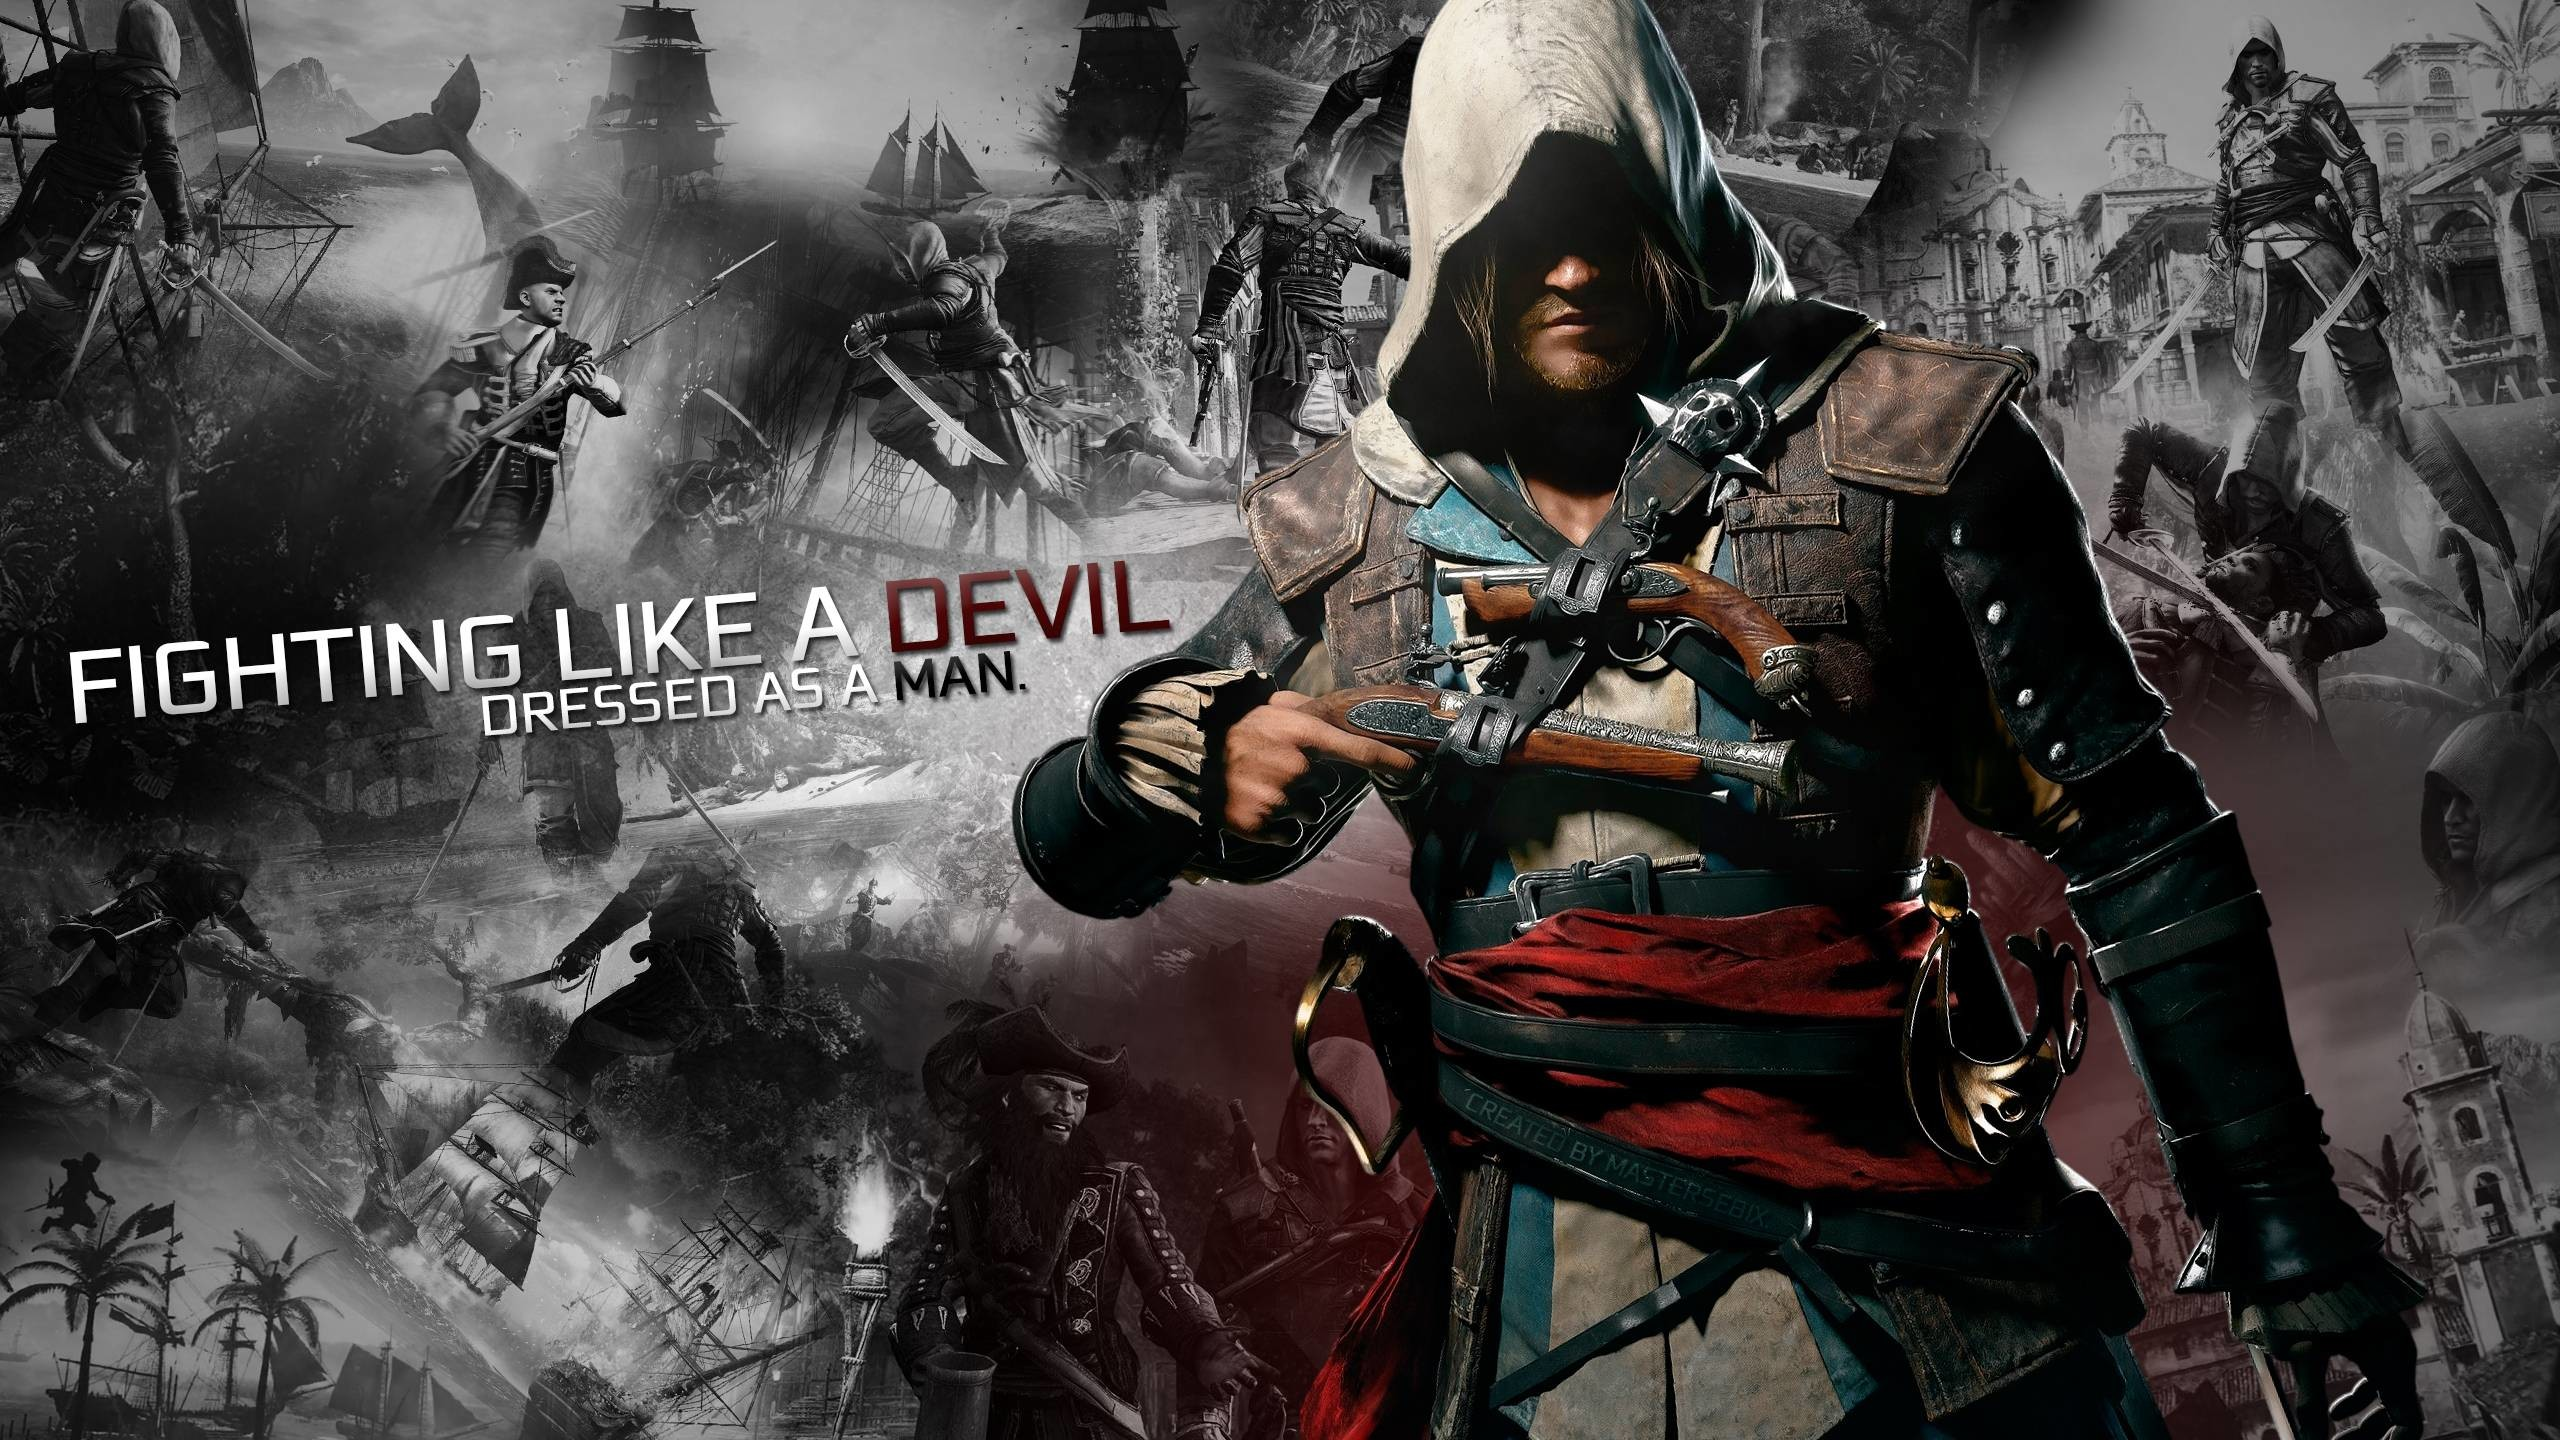 2560x1440 Assassins Creed 2 HD Wallpapers and Backgrounds | Adorable Wallpapers |  Pinterest | Assassins creed and Wallpaper